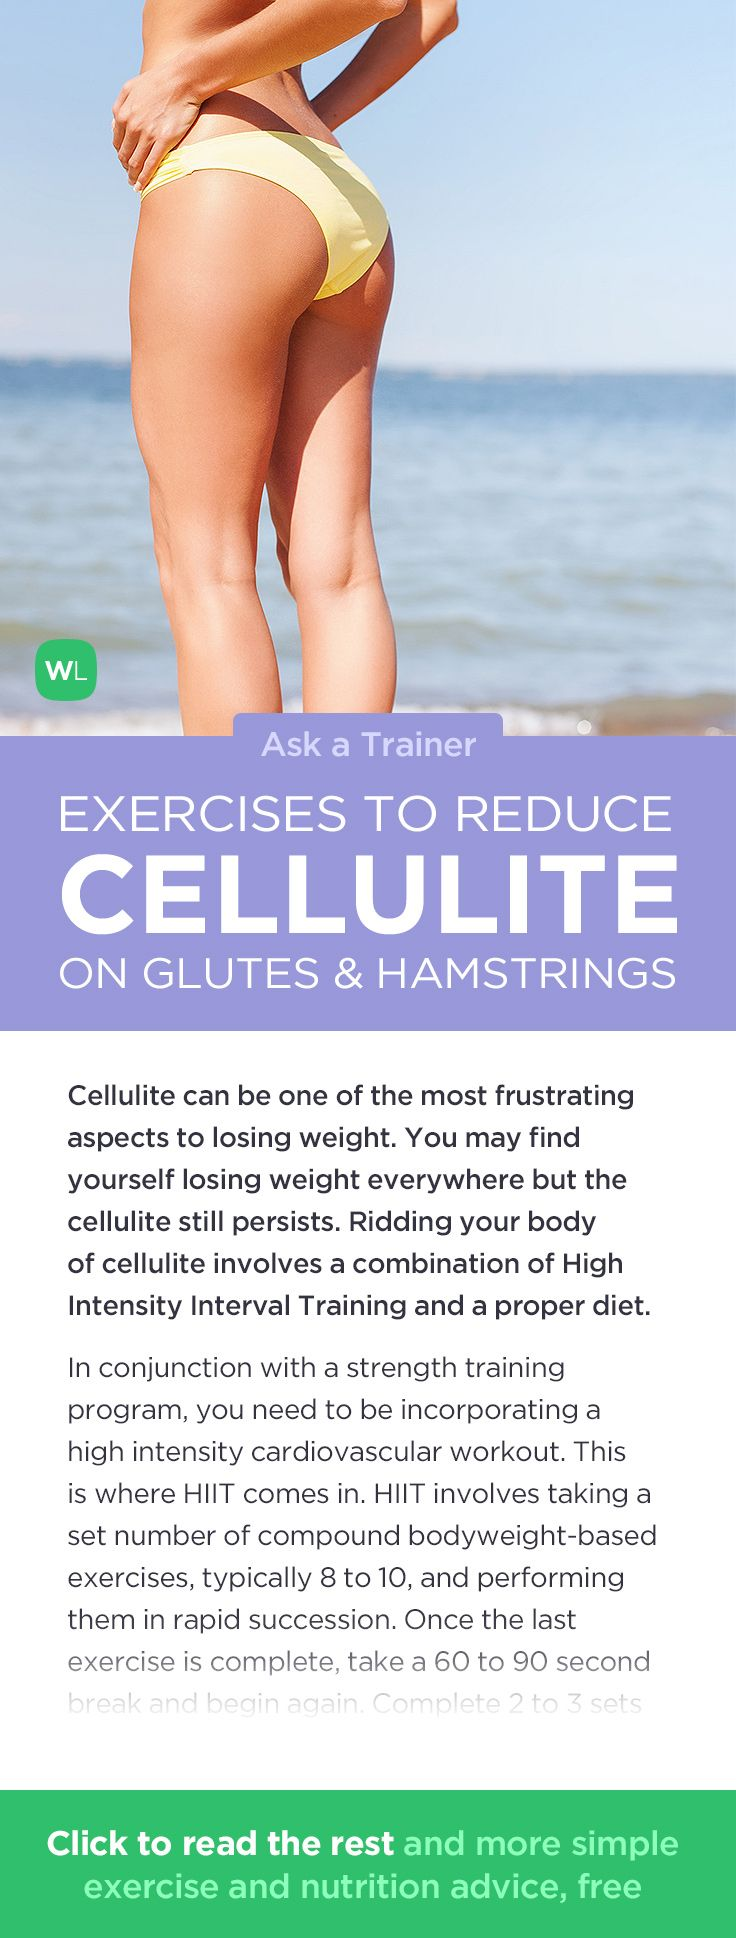 What exercises will help reduce cellulite on my glutes and hamstrings? Visit http://wlabs.me/Ye9pHq to find out!